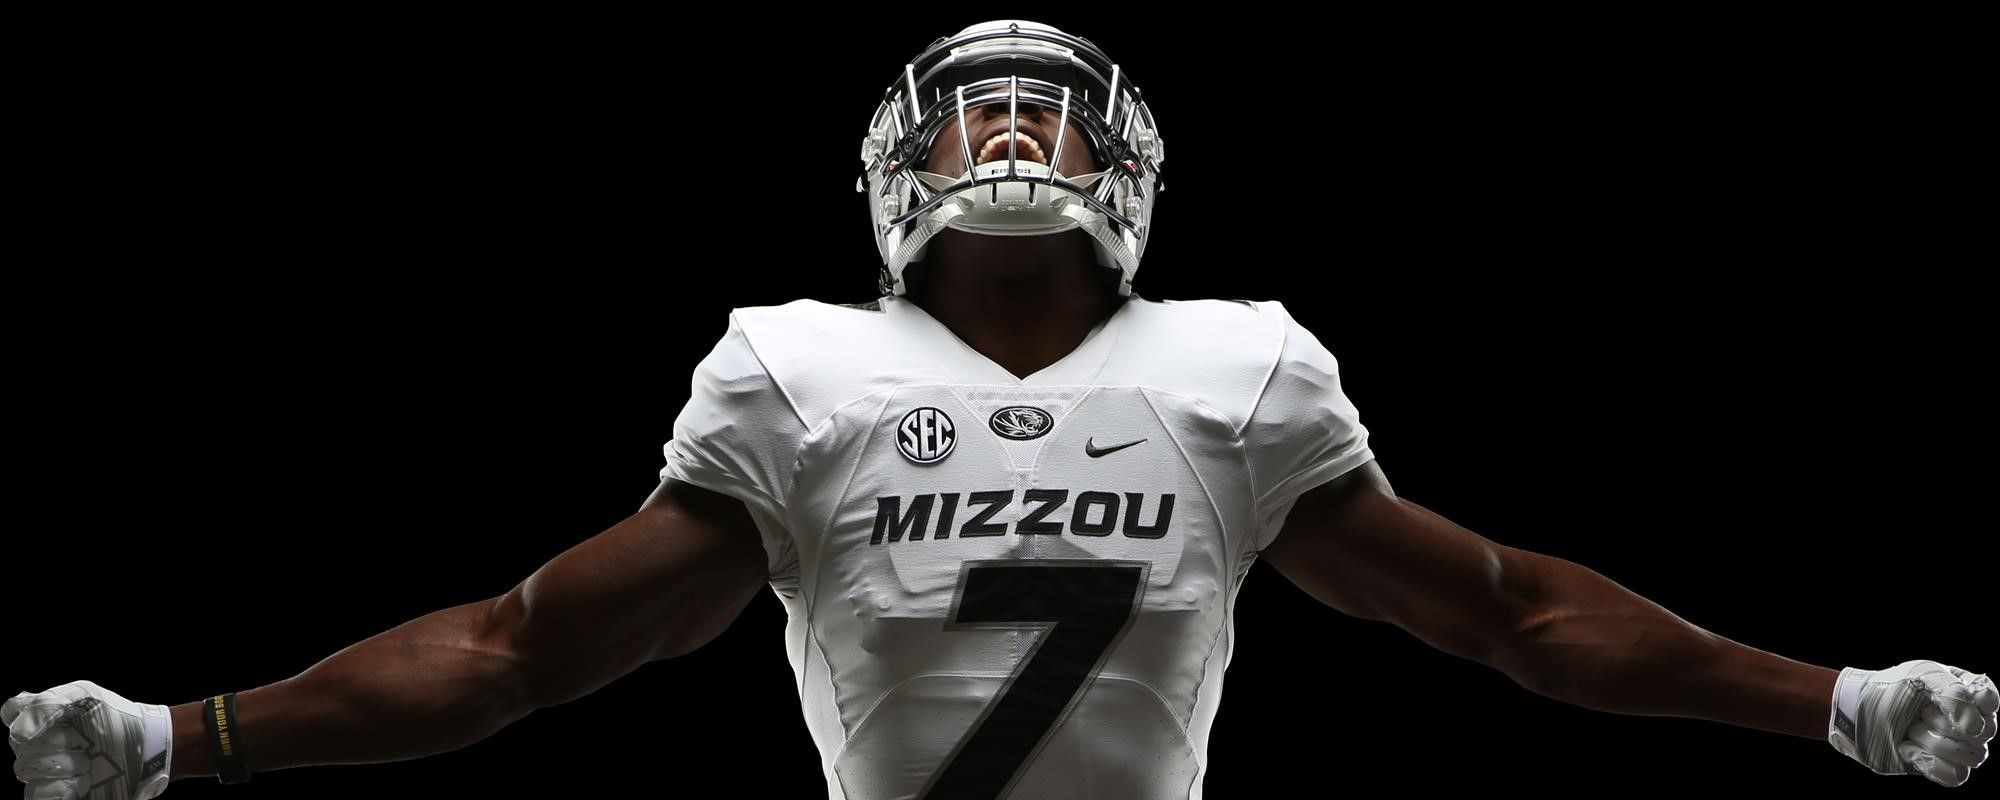 11801e214bb Mizzou Uniform Reveal for Arrowhead Game